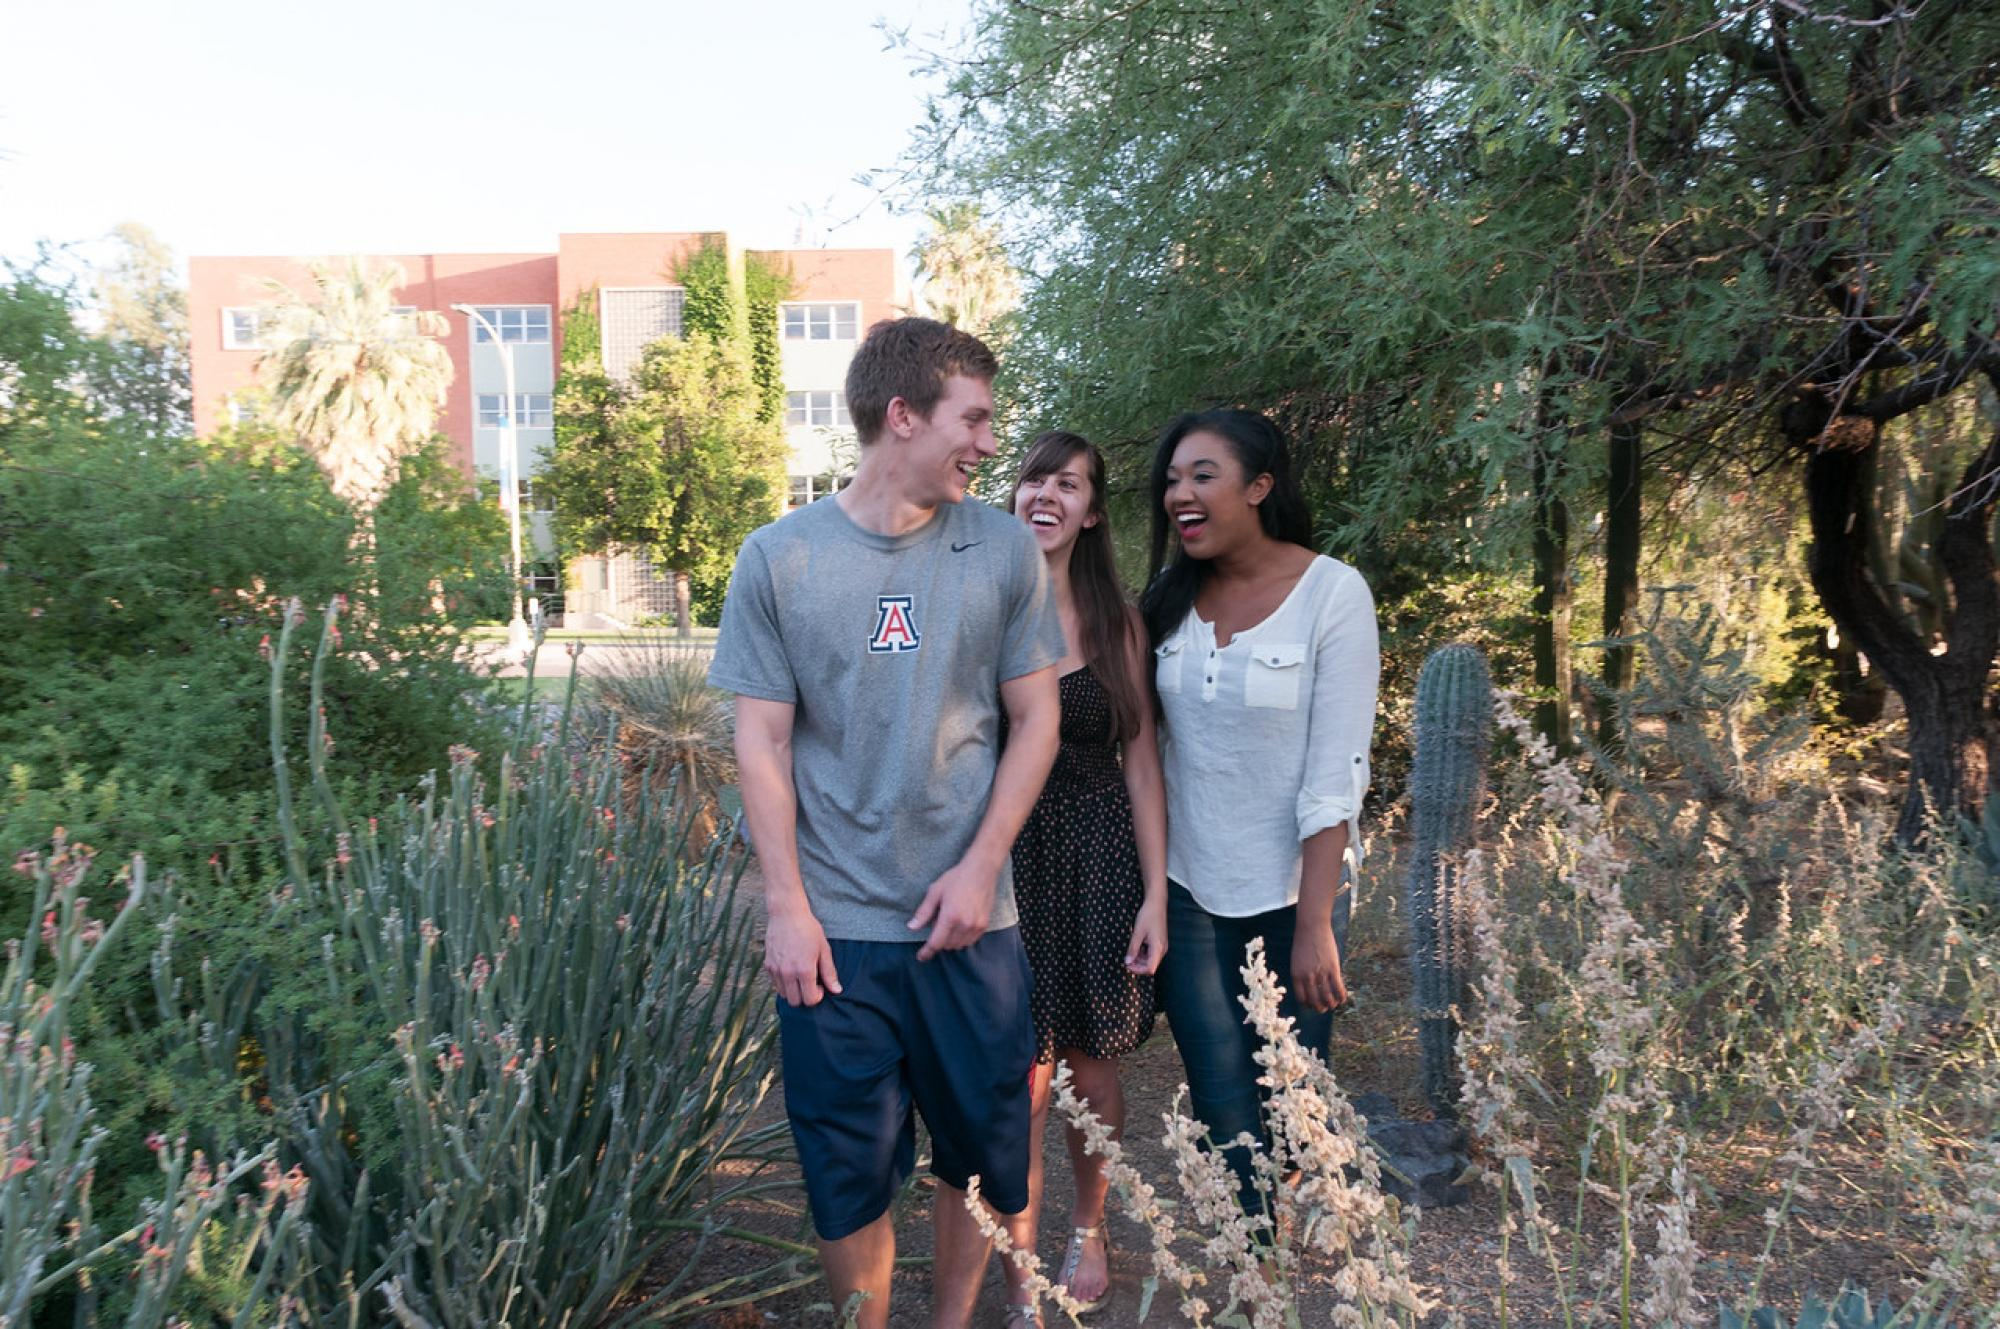 three smiling students walk through cactus garden, University of Arizona, Tucson